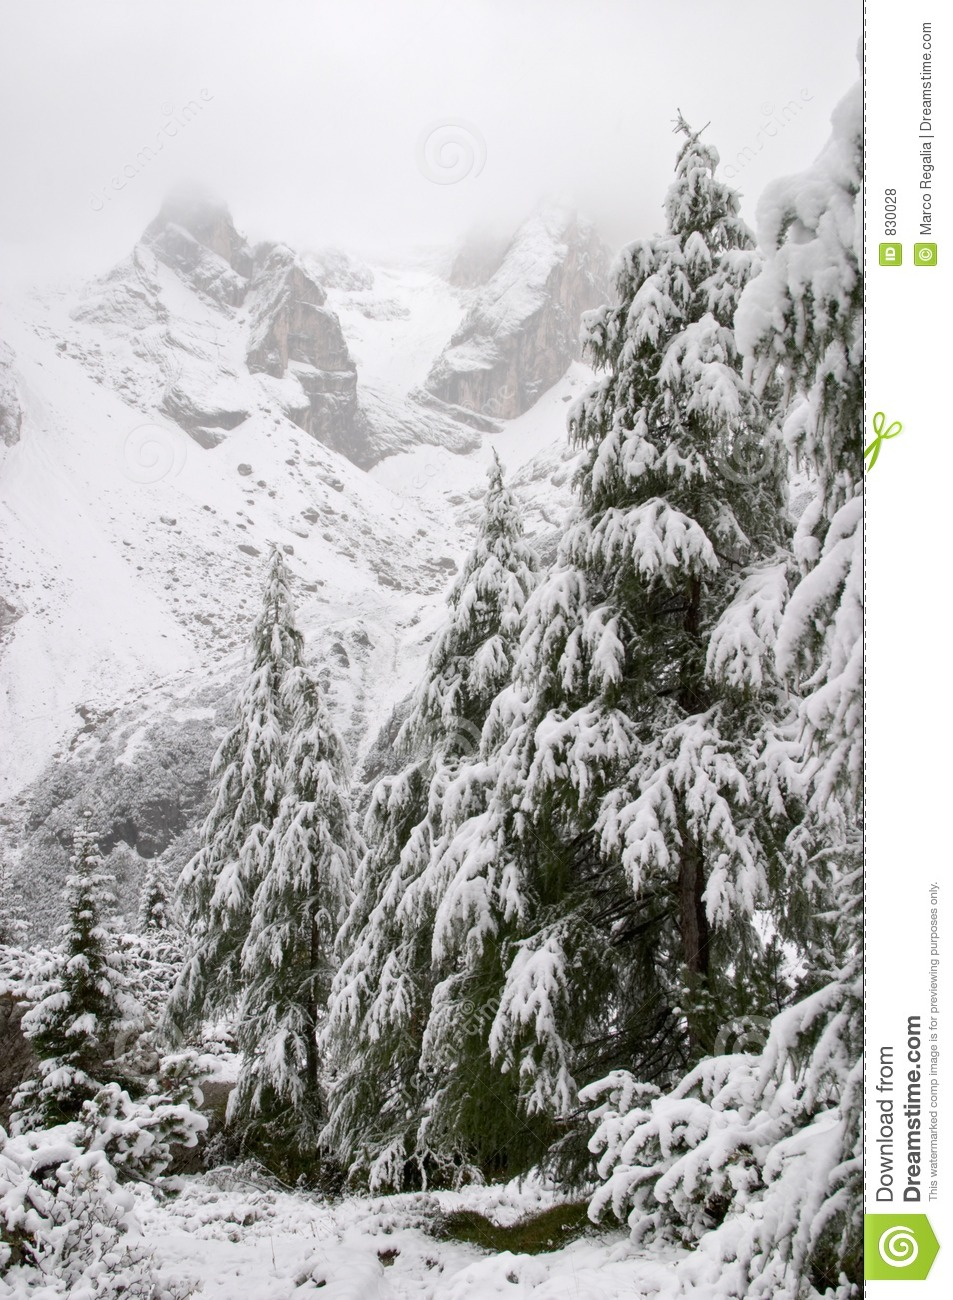 Early autumn snow in Dolomite Mountains